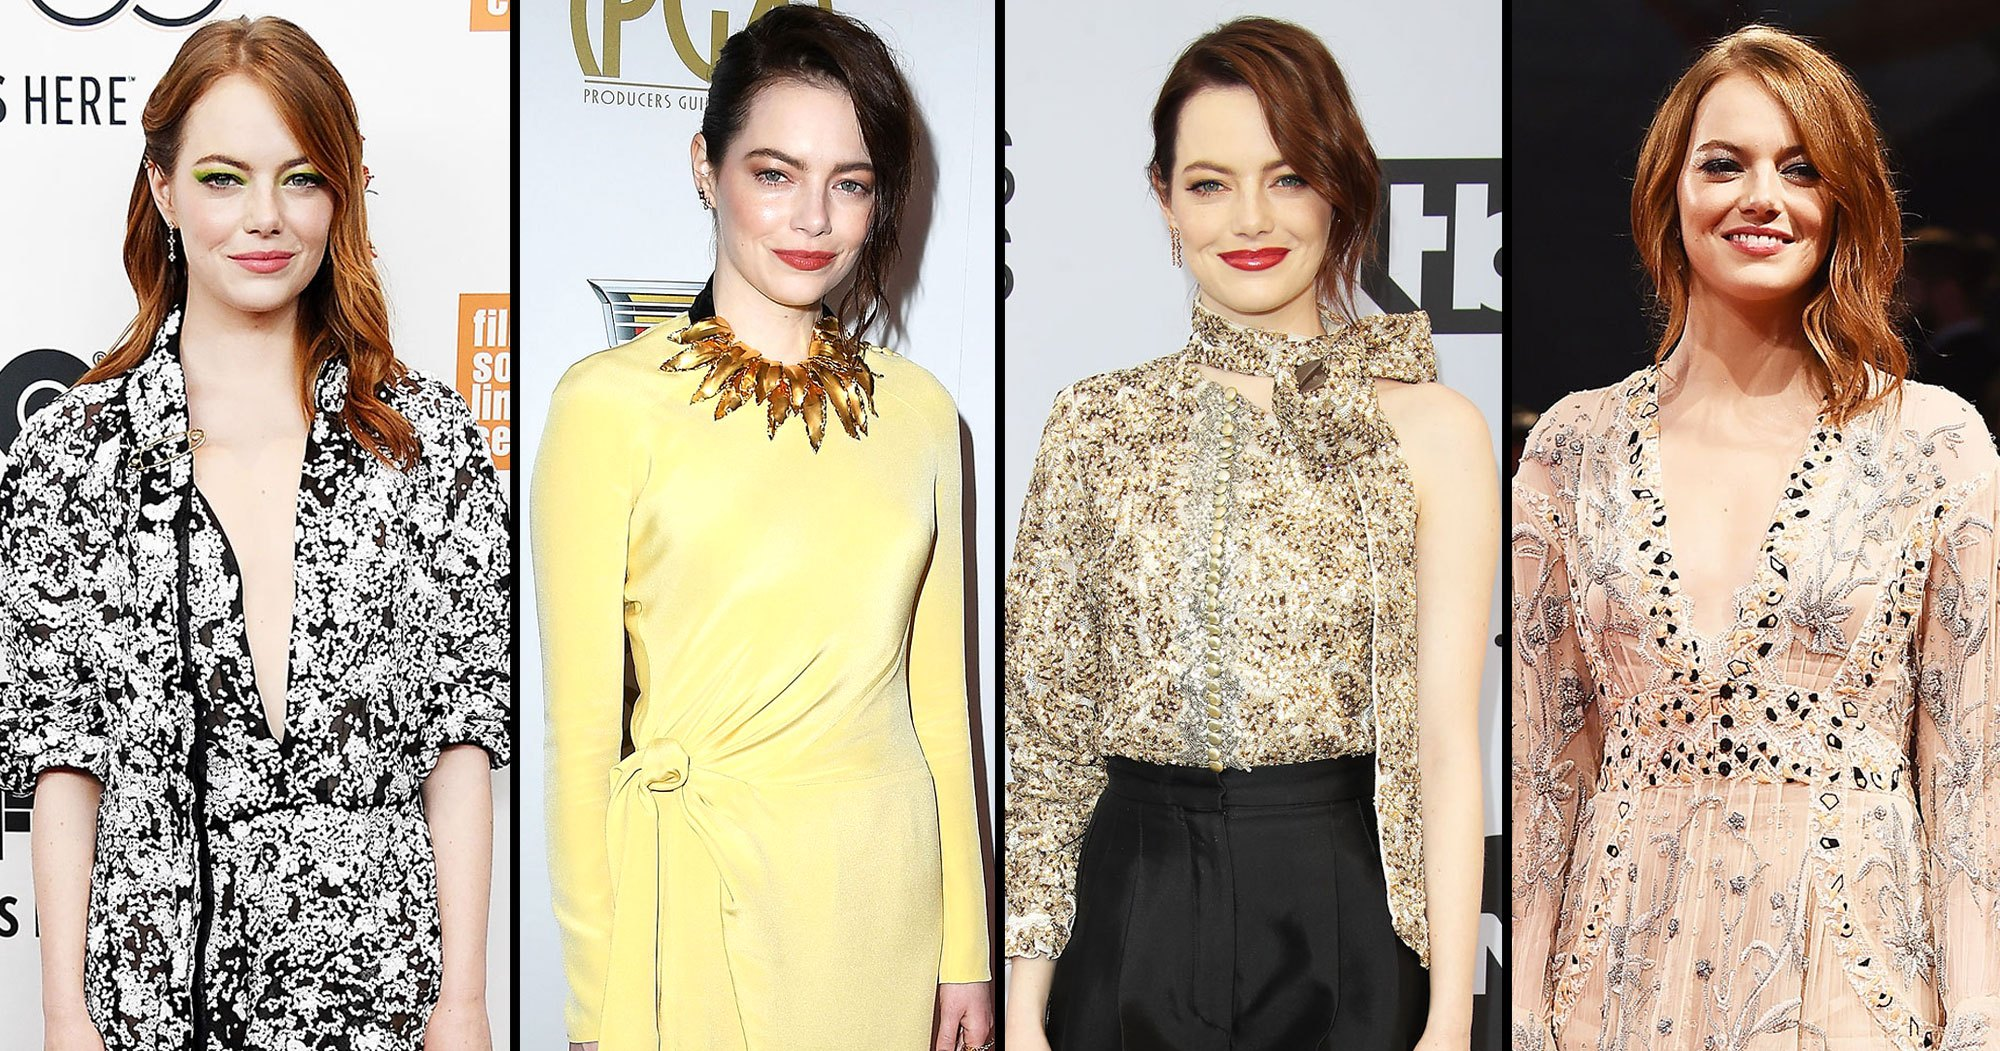 Emma Stone Is a Standout Style Star in Louis Vuitton: See Her 10 Top Red Carpet Looks